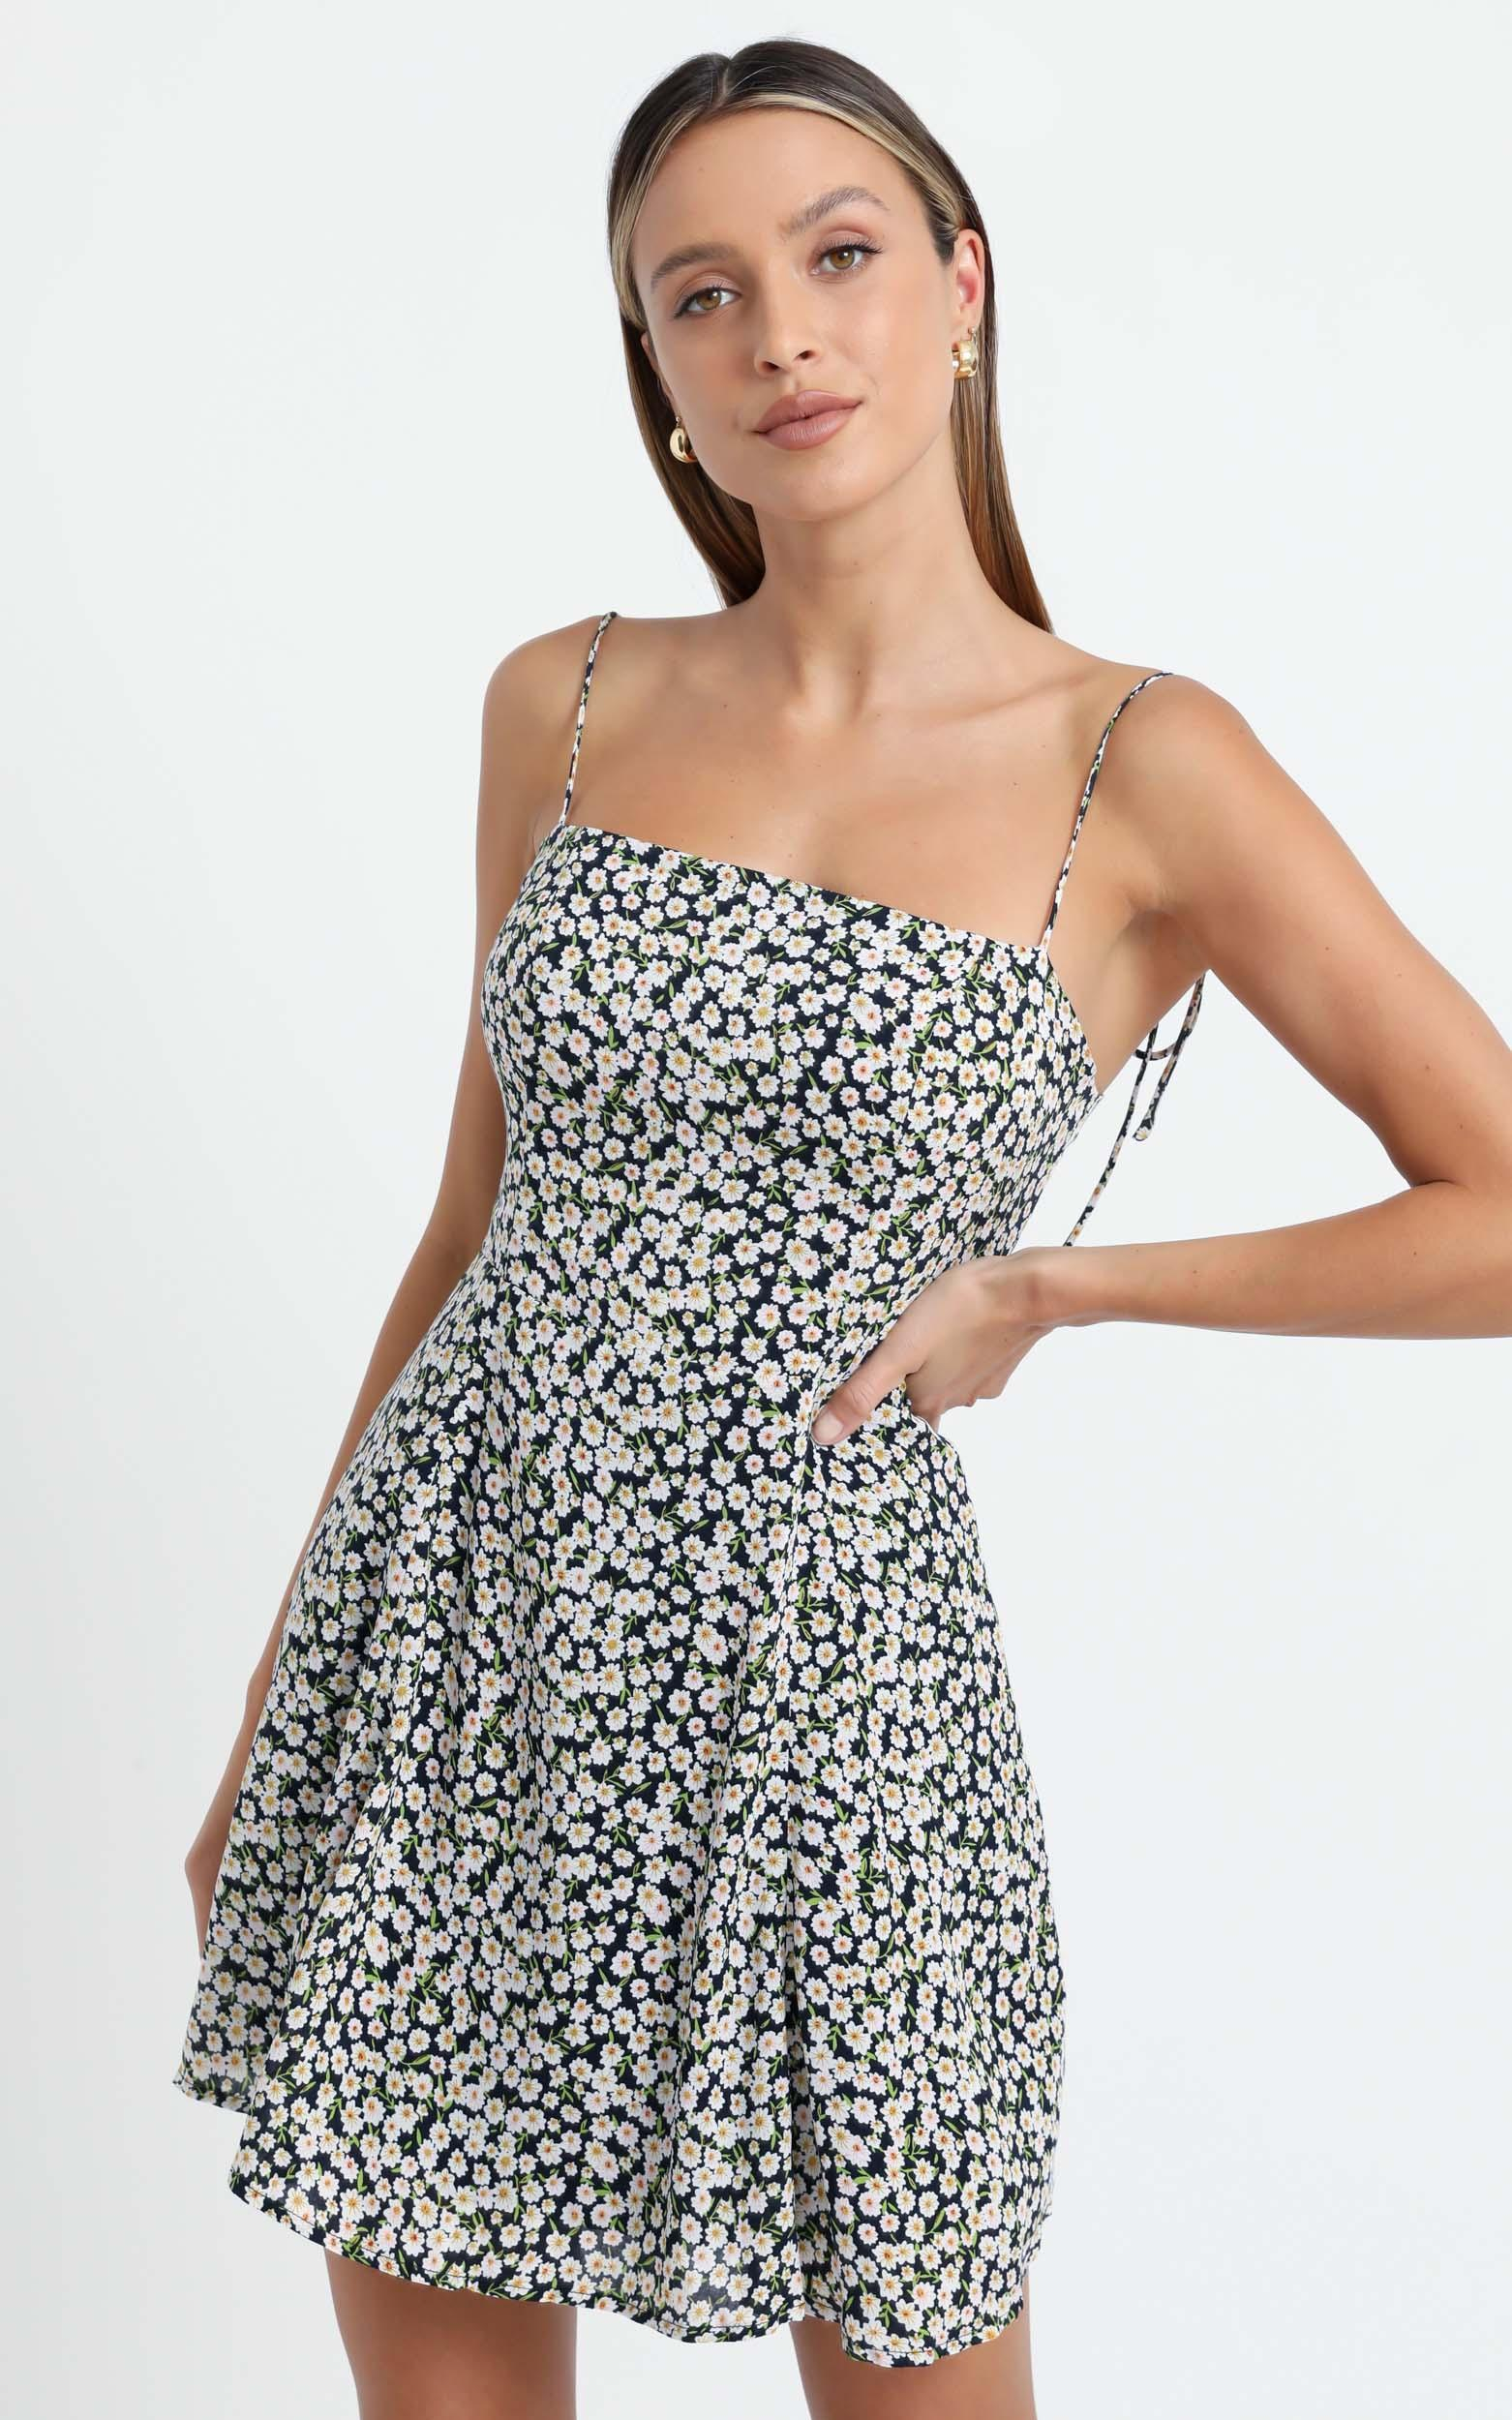 Roll With Me Dress in Navy Floral - 6 (XS), Navy, hi-res image number null